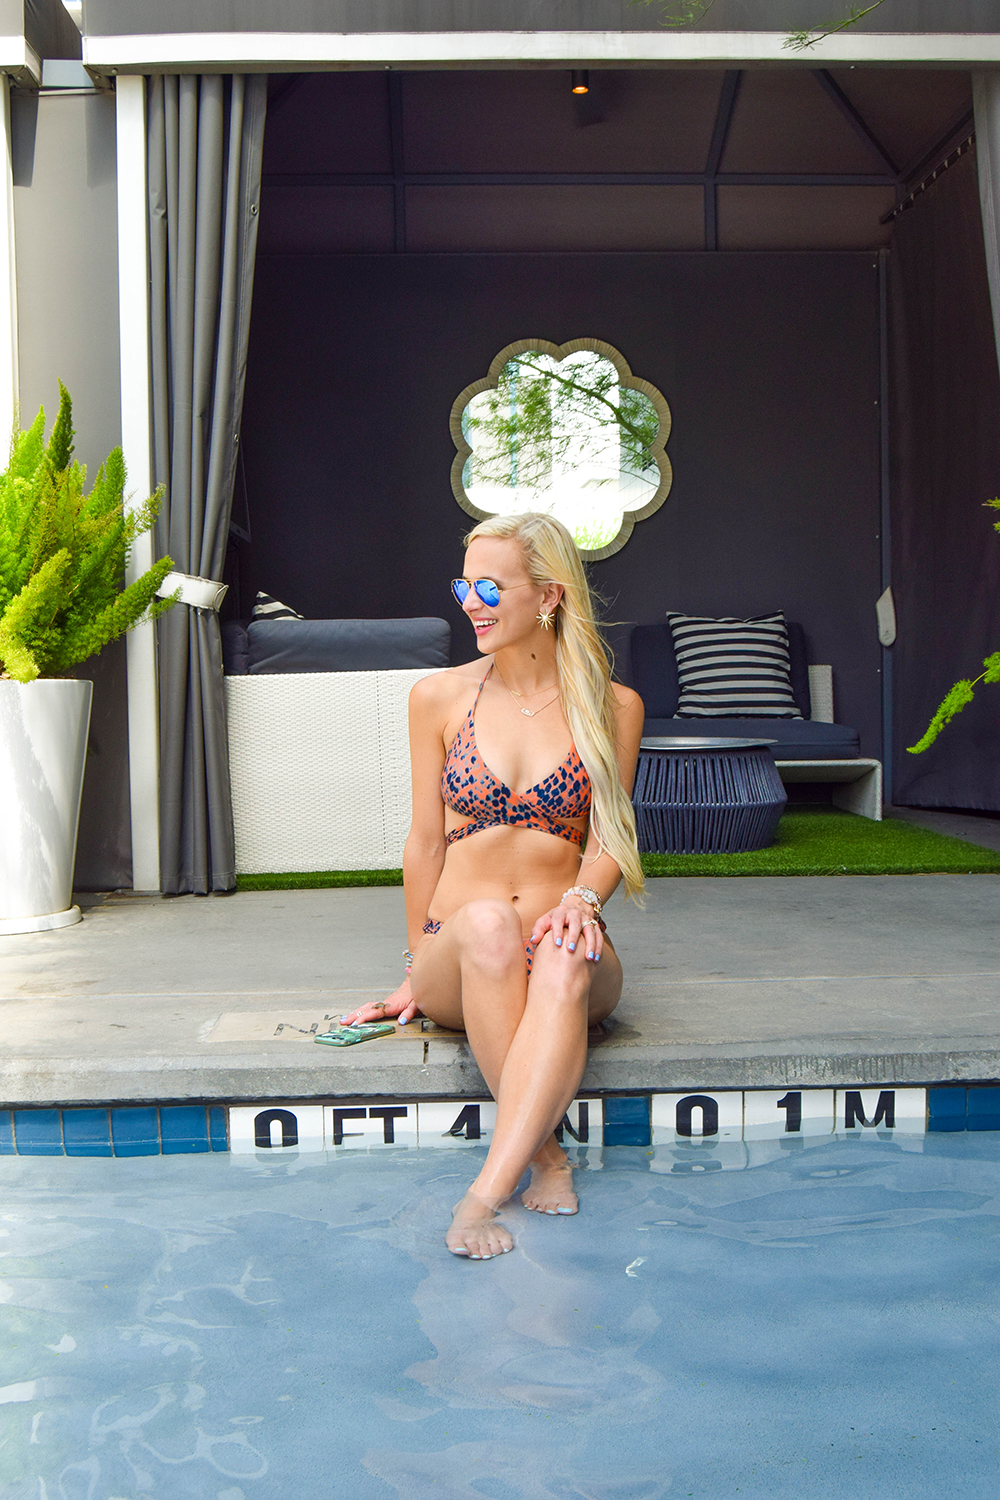 vandi-fair-blog-lauren-vandiver-dallas-texas-southern-fashion-blogger-staycation-w-hotel-austin-travel-vacation-atx-texas-review-vix-swimwear-snake-print-bikini-2